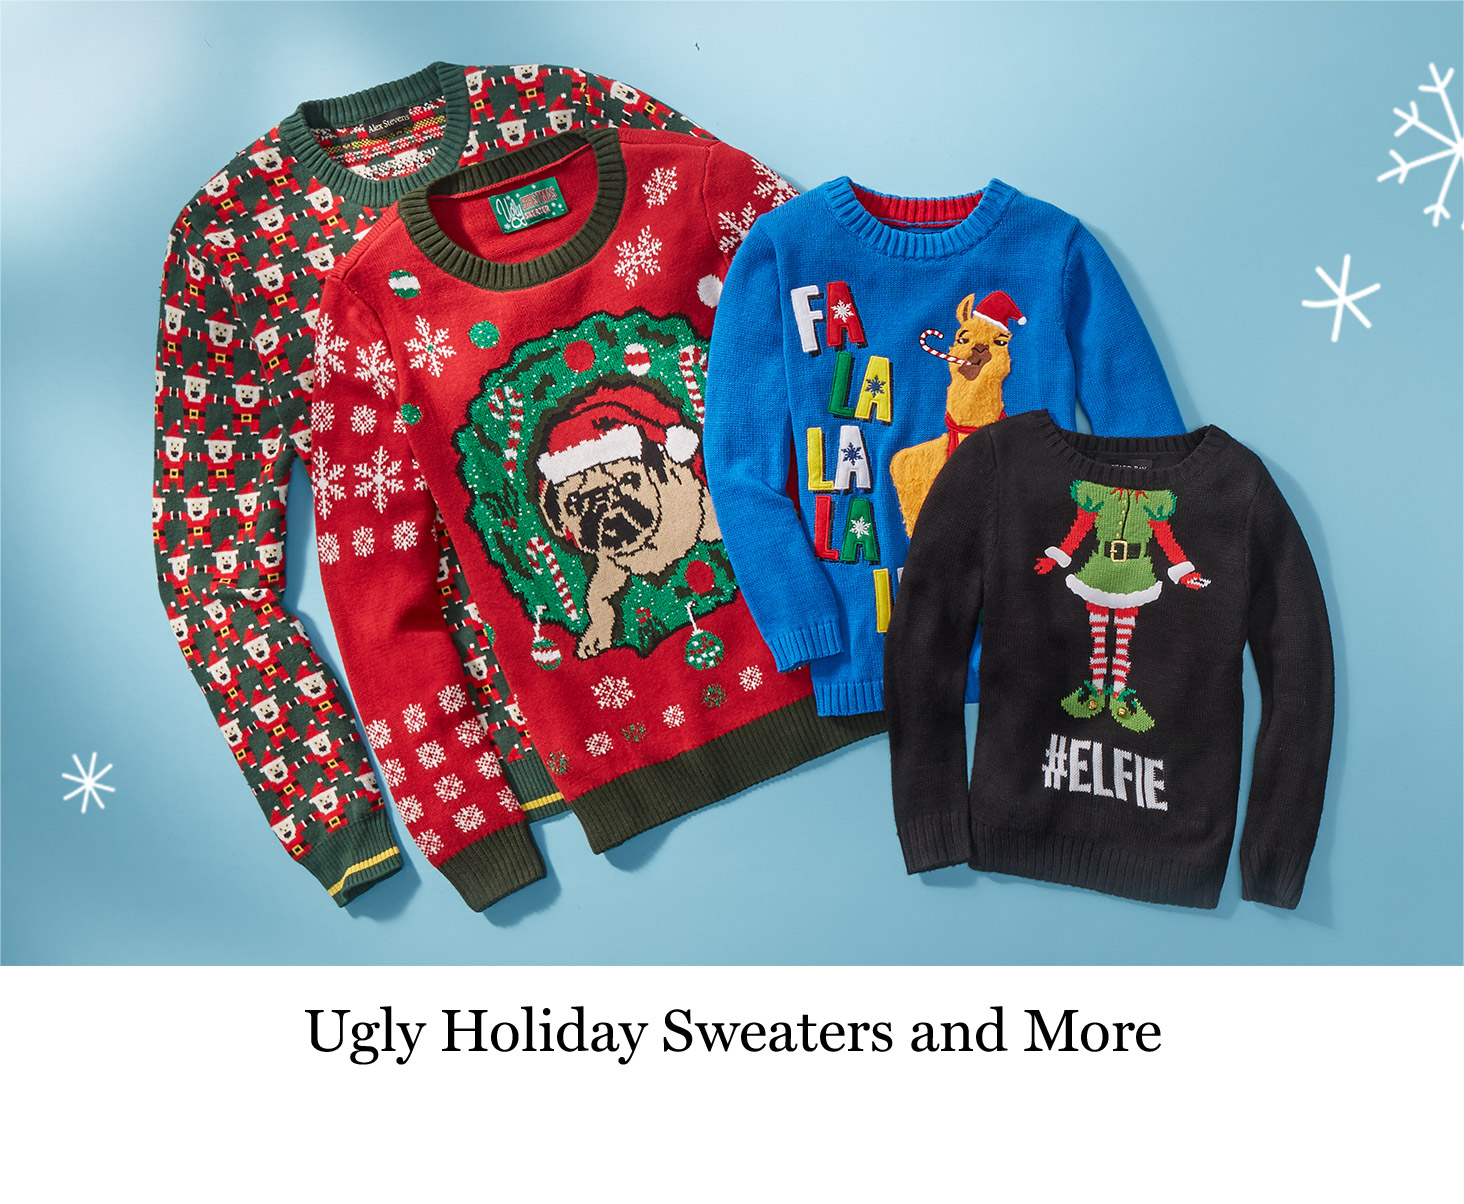 Ugly Holiday Sweaters and More